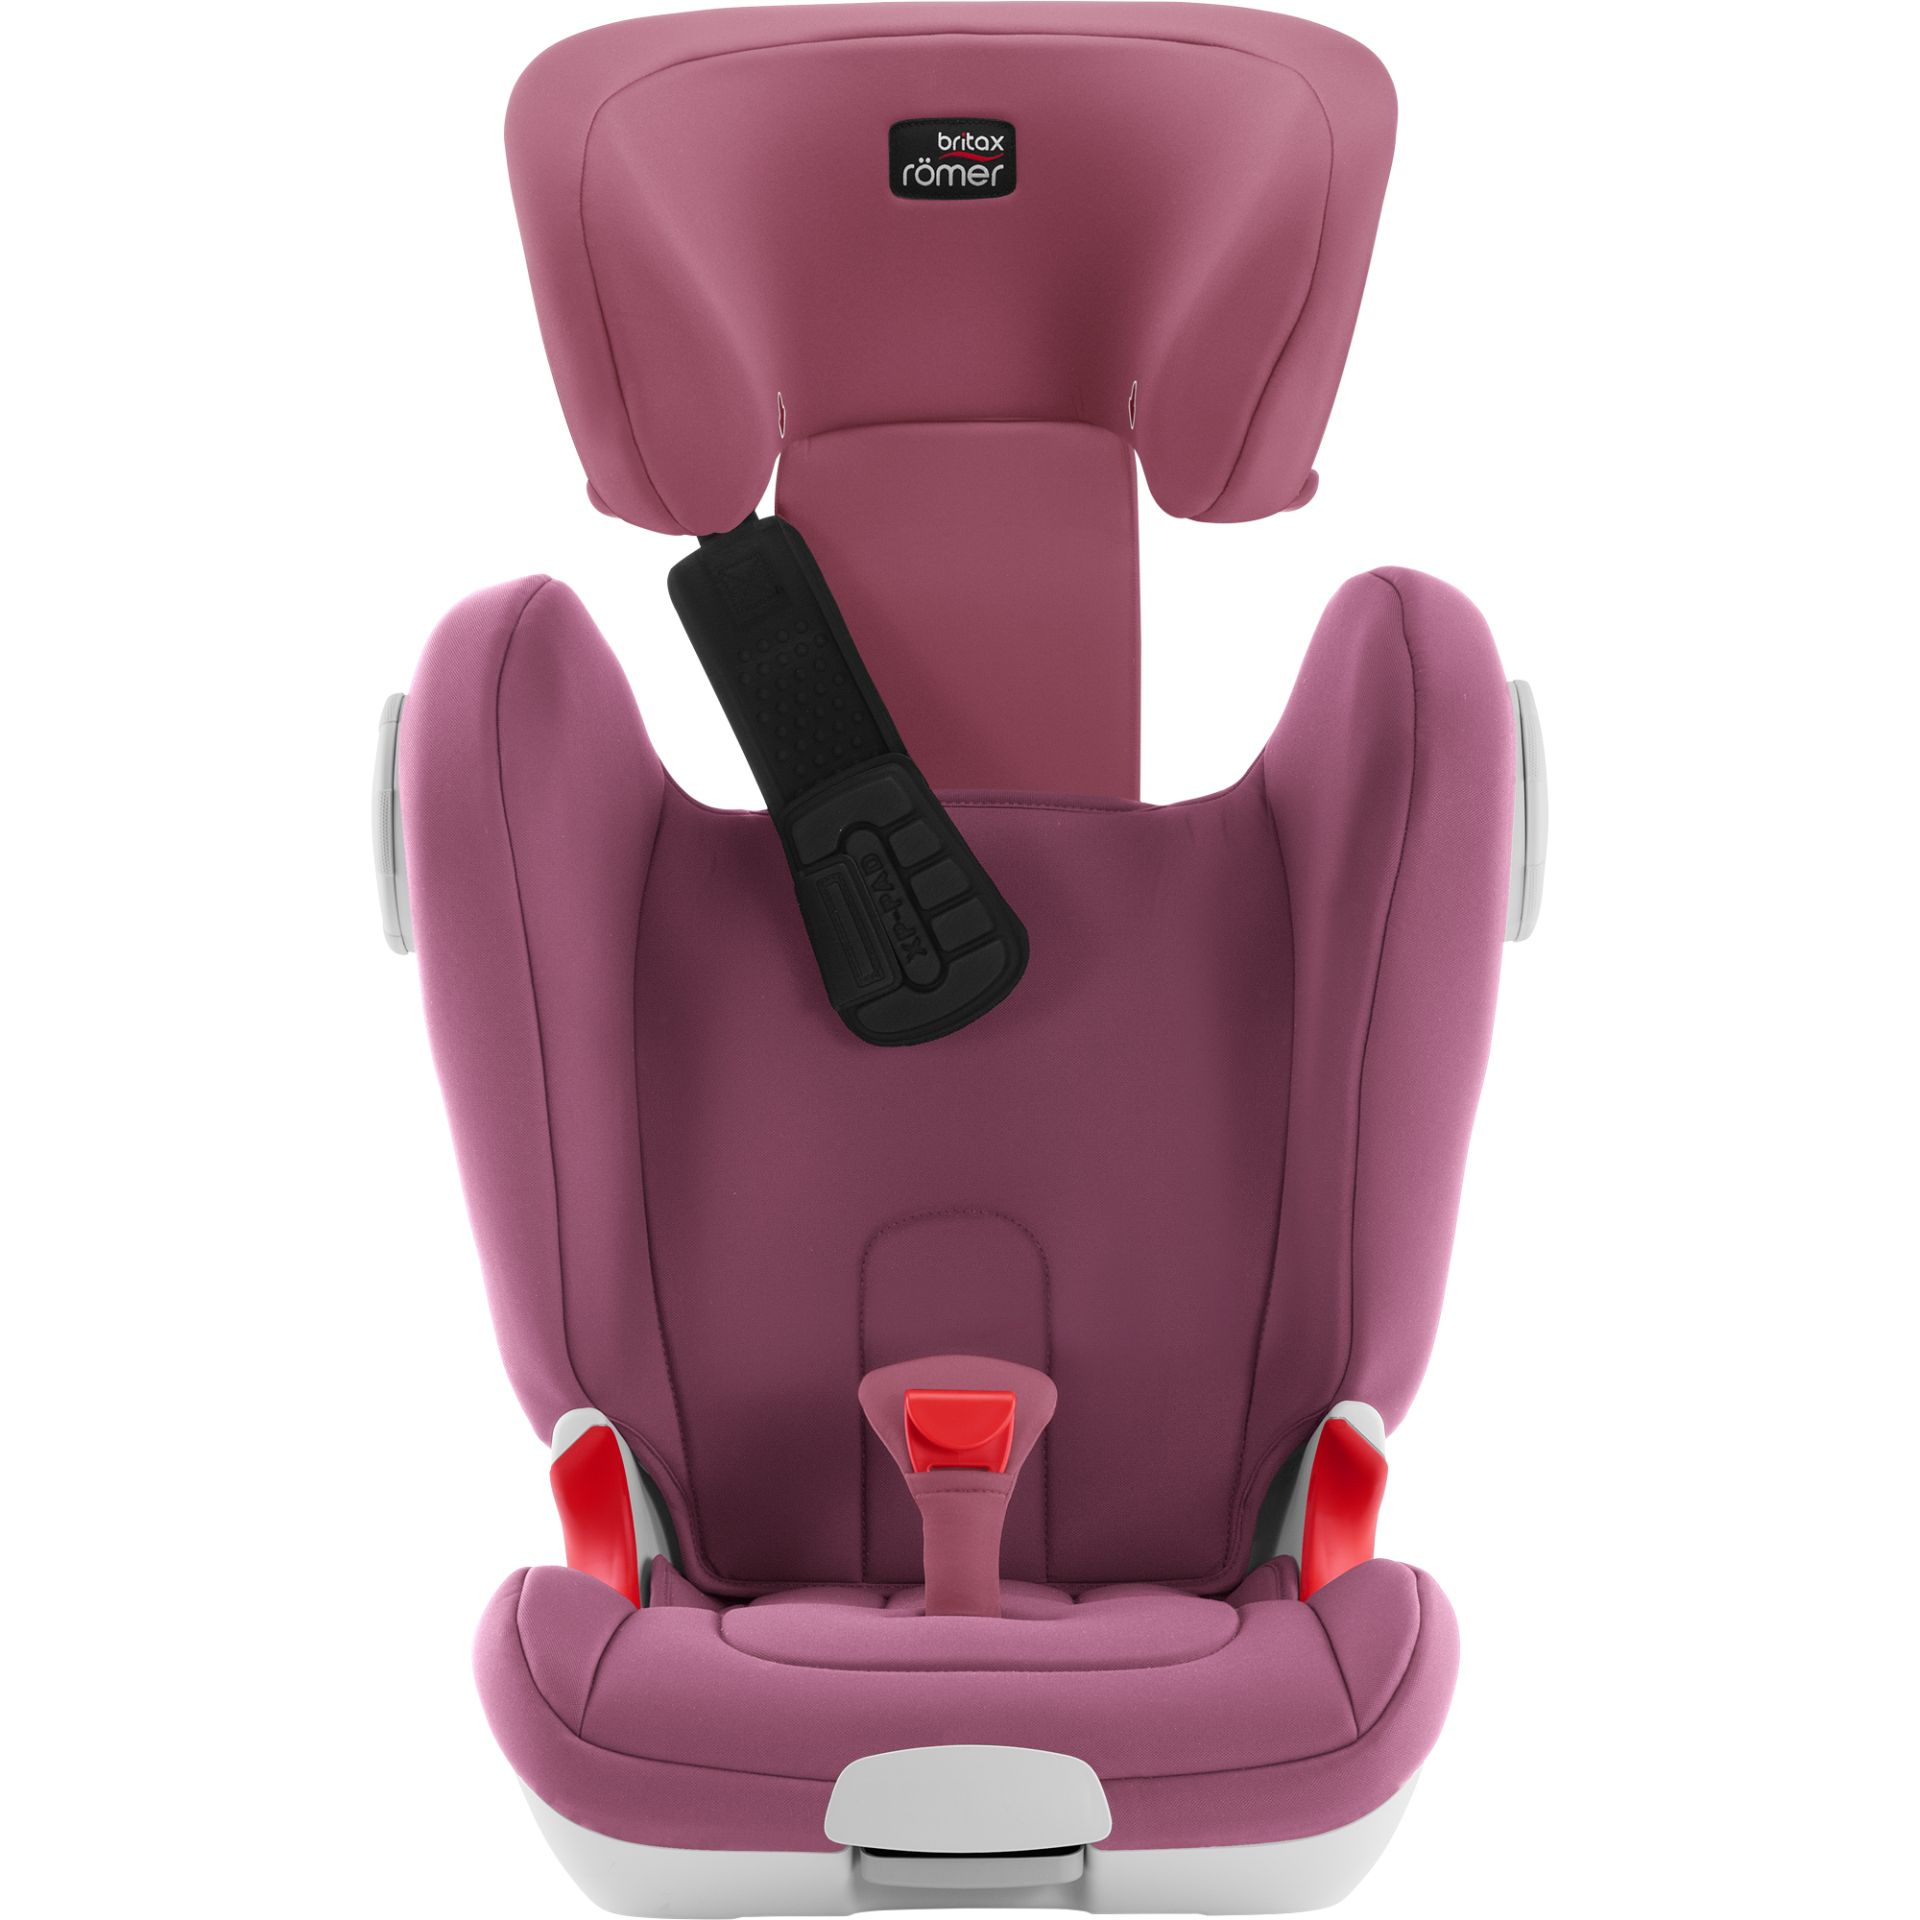 britax r mer child car seat kidfix ii xp sict 2019 wine. Black Bedroom Furniture Sets. Home Design Ideas